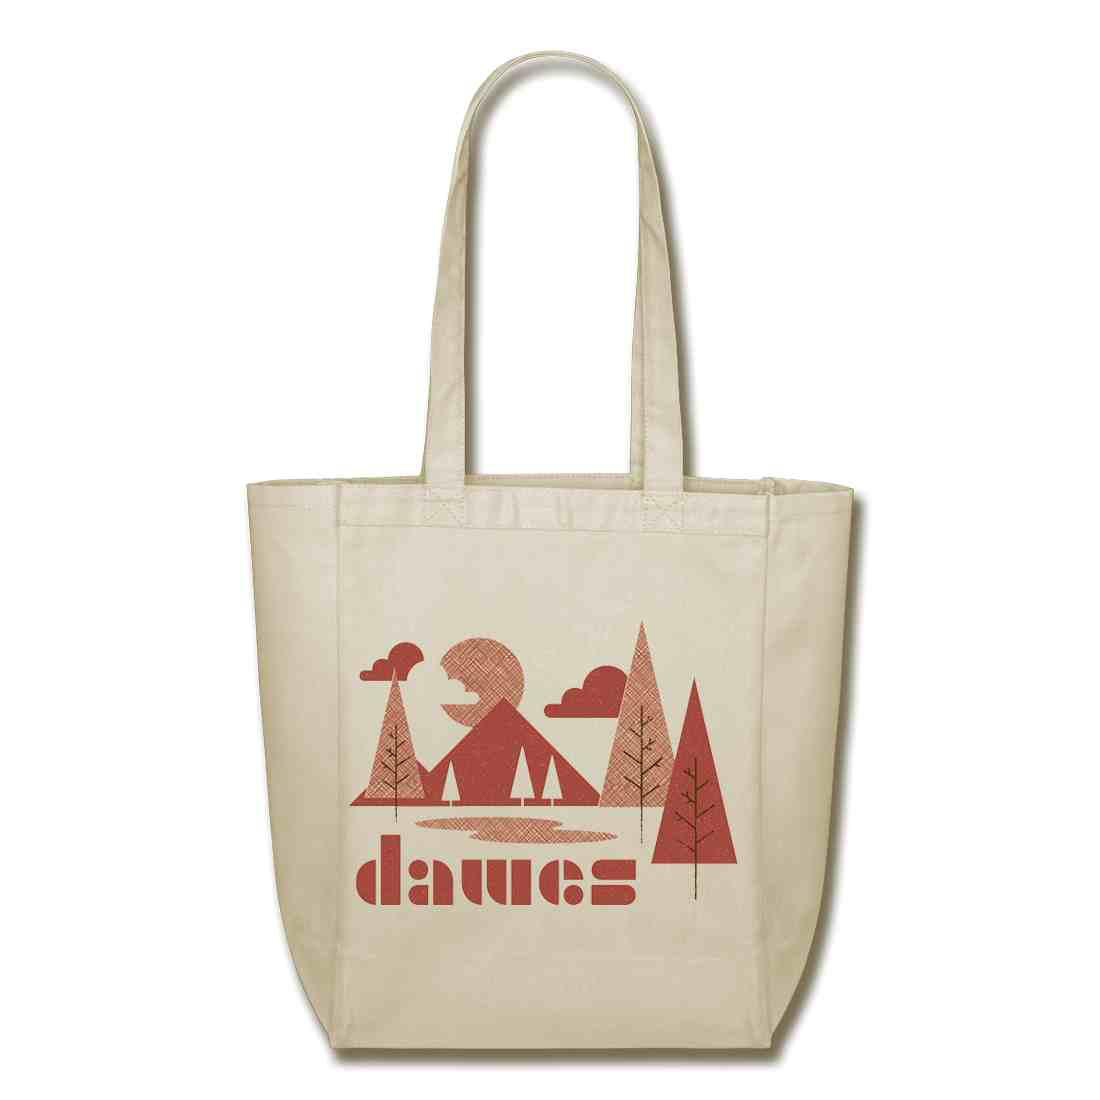 Dawes Landscapes Tote Bag